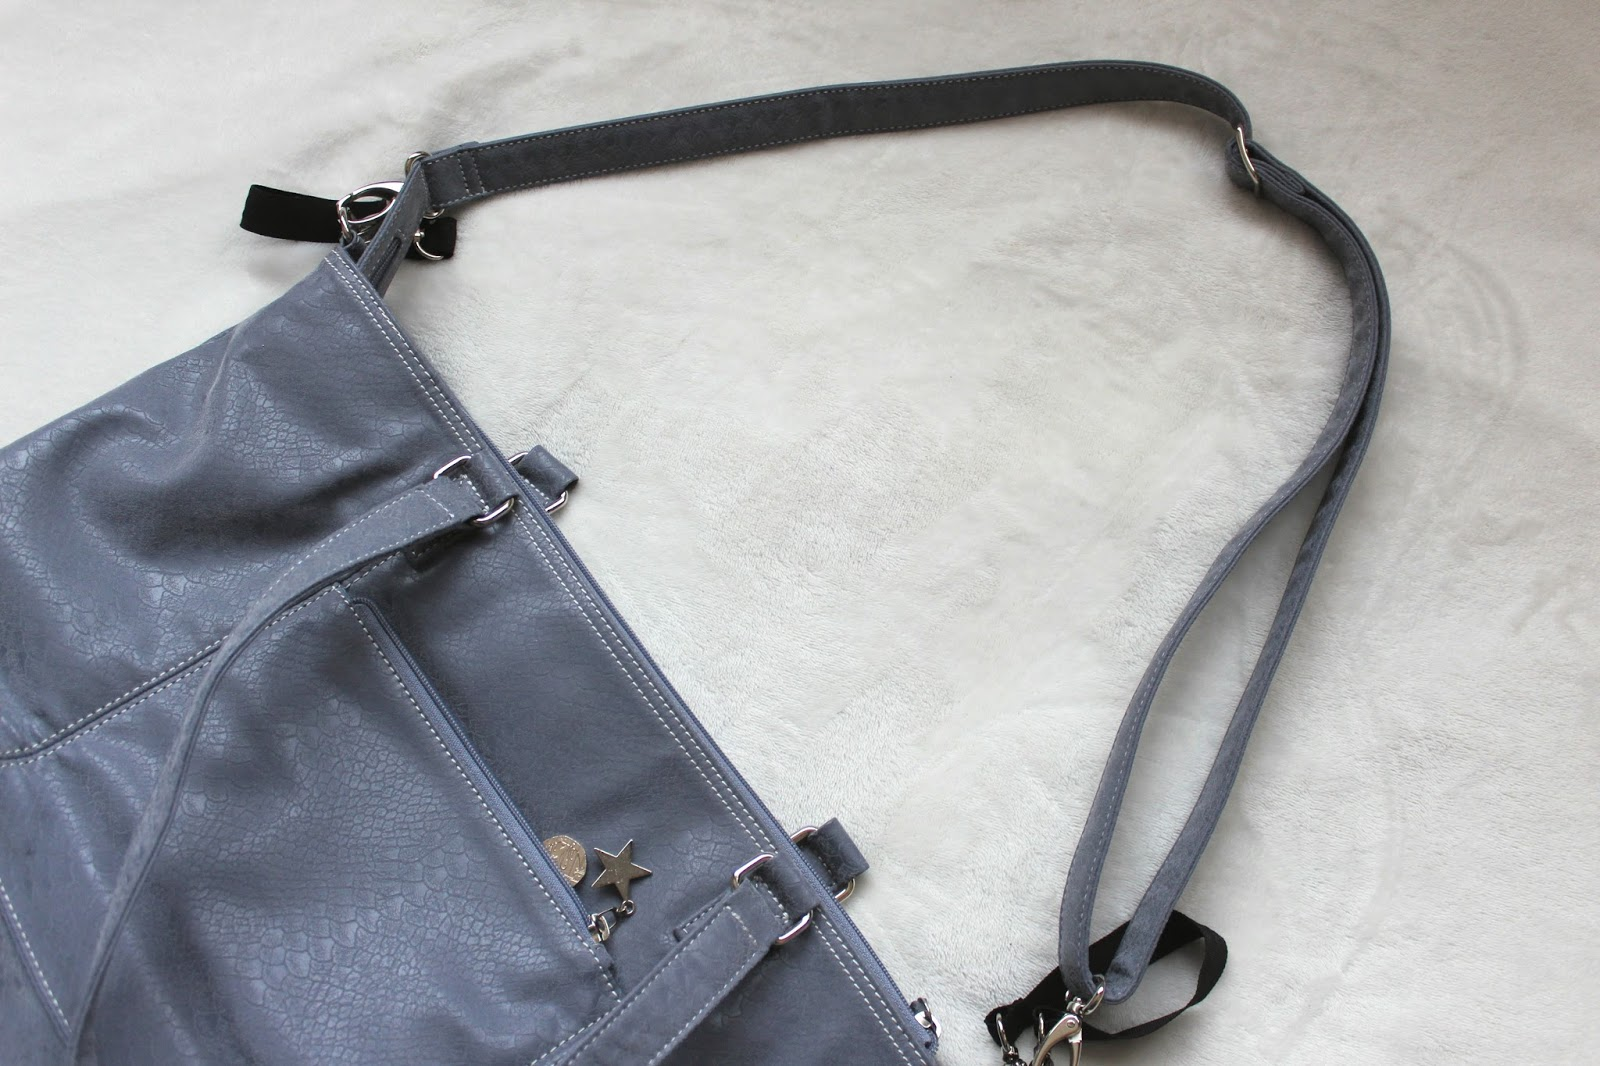 Large grey handbag with a long grey strap.